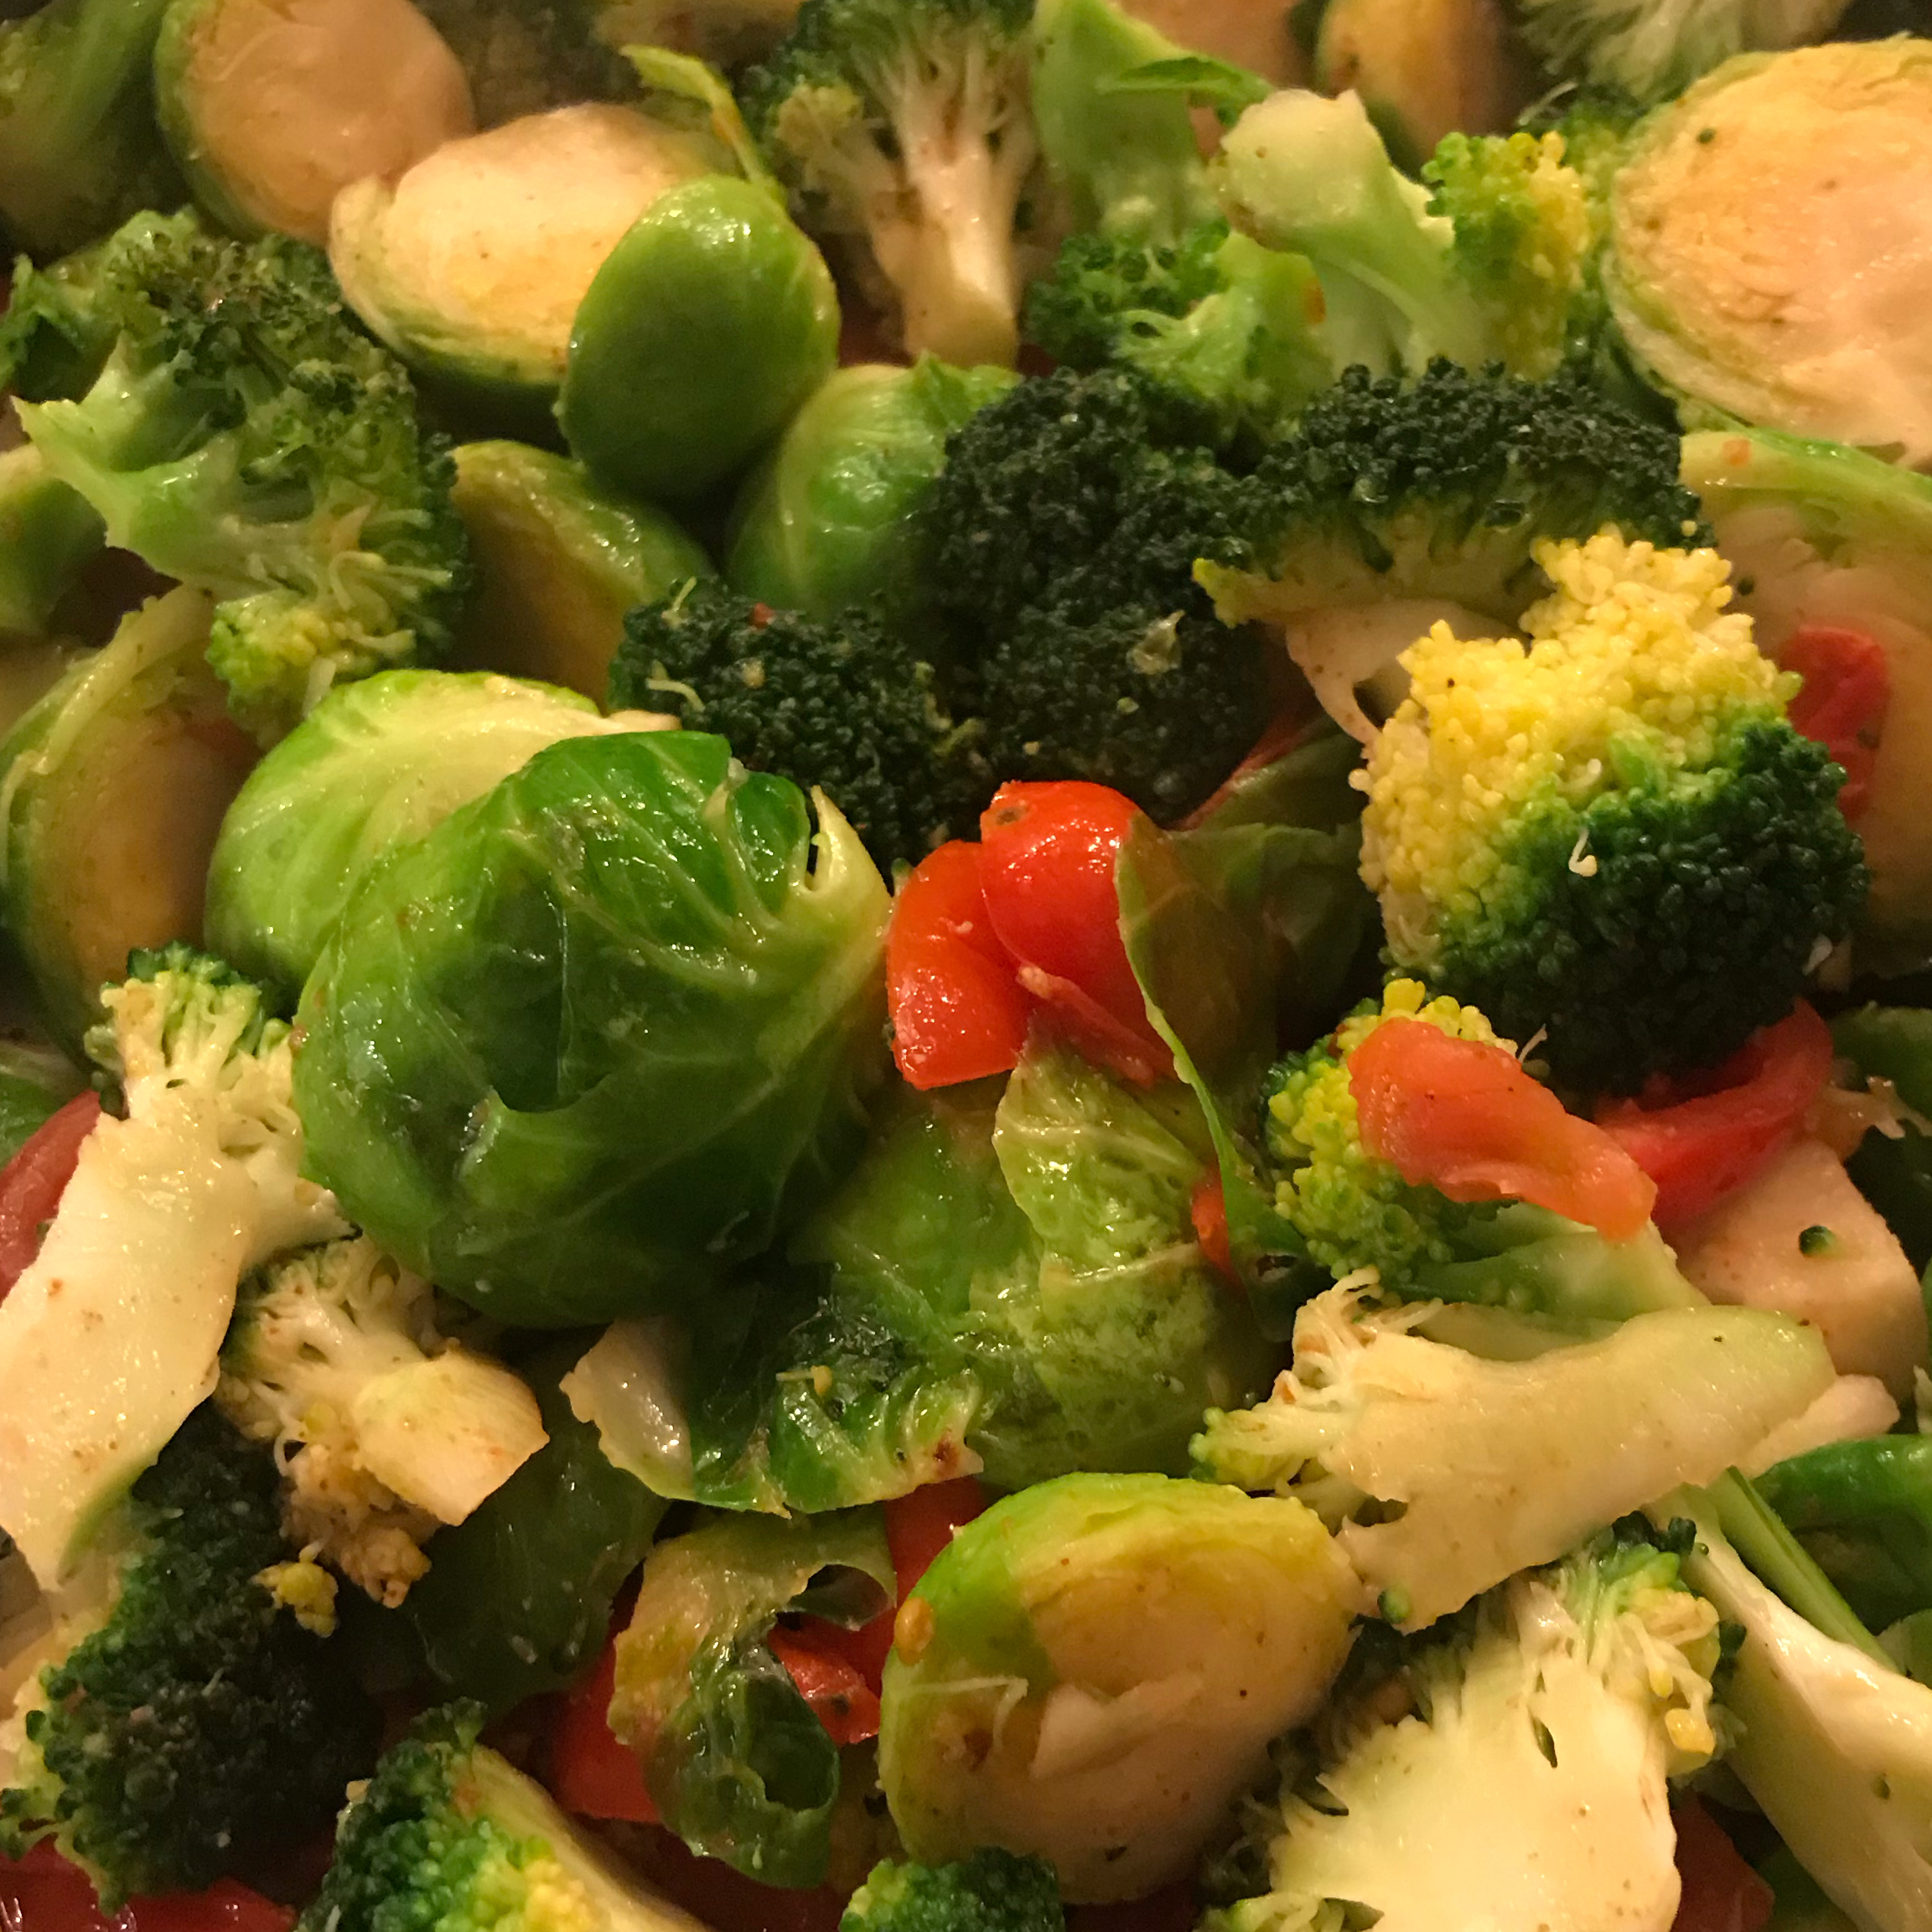 Broccoli and Brussels Sprout Delight Barbara Tosi Harder